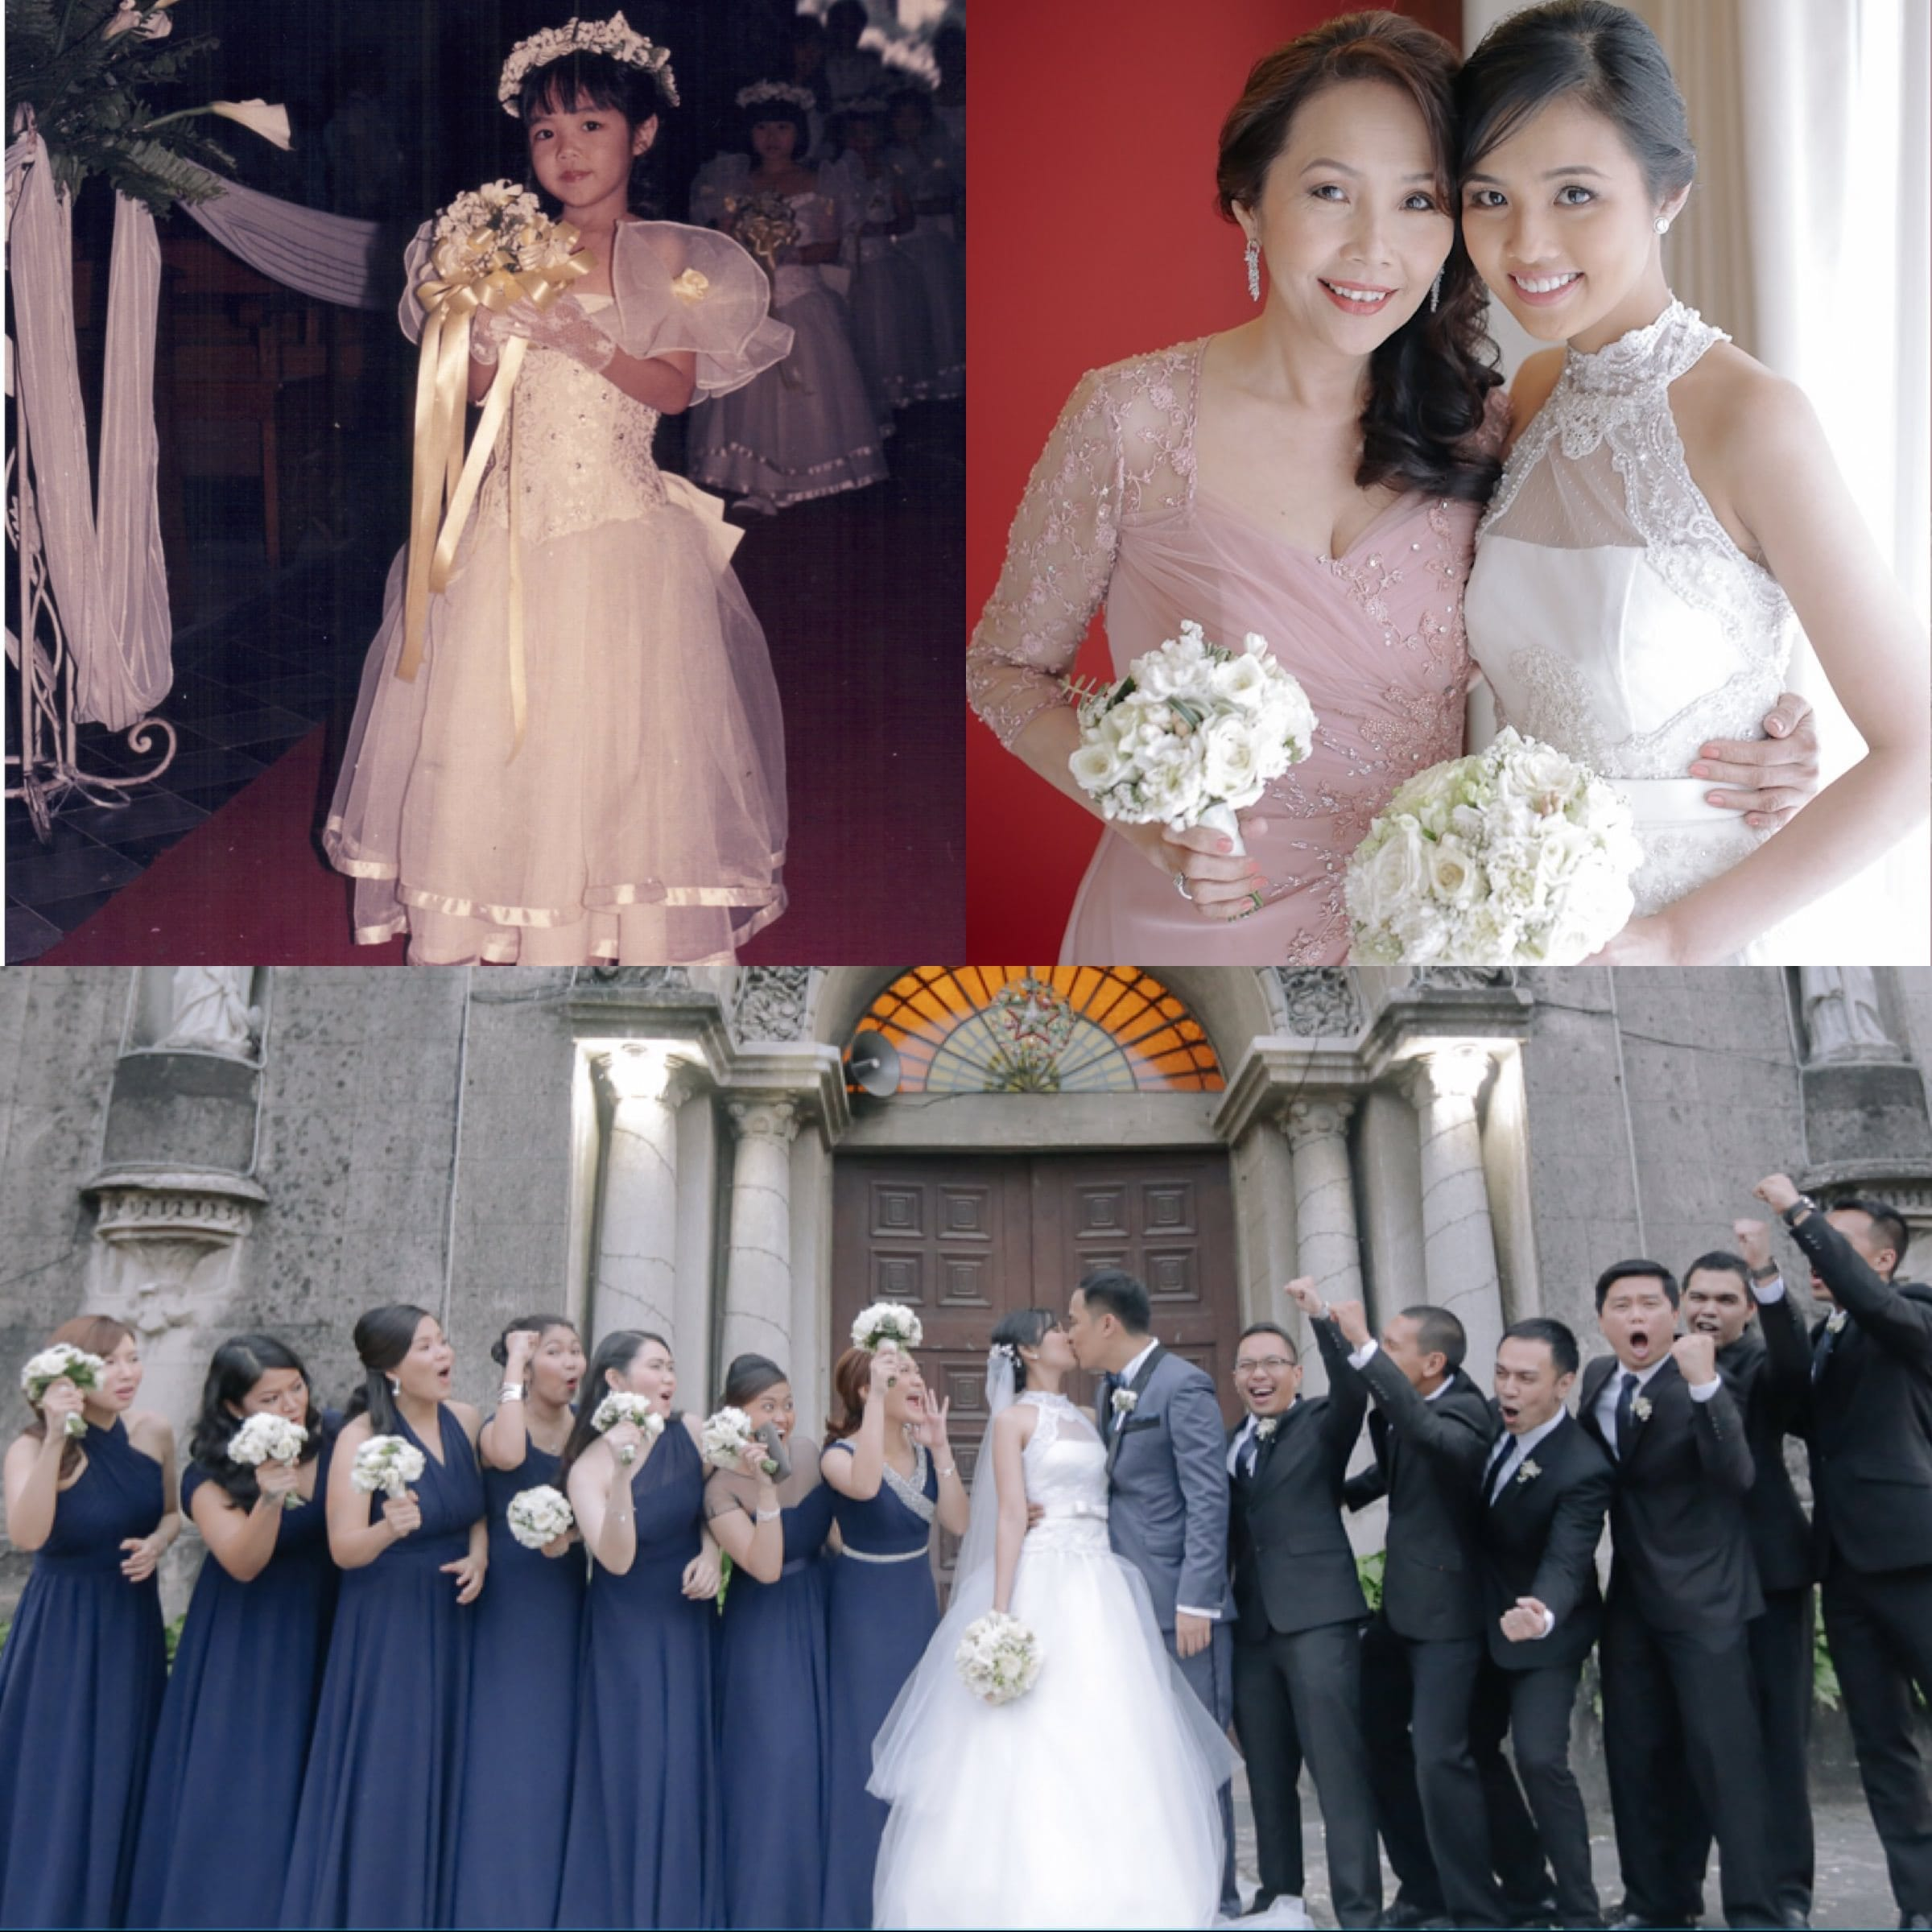 Top left: Katzi as flower girl; Top right: Katzi with mom Dada; Bottom: Bride and Groom with their entourage